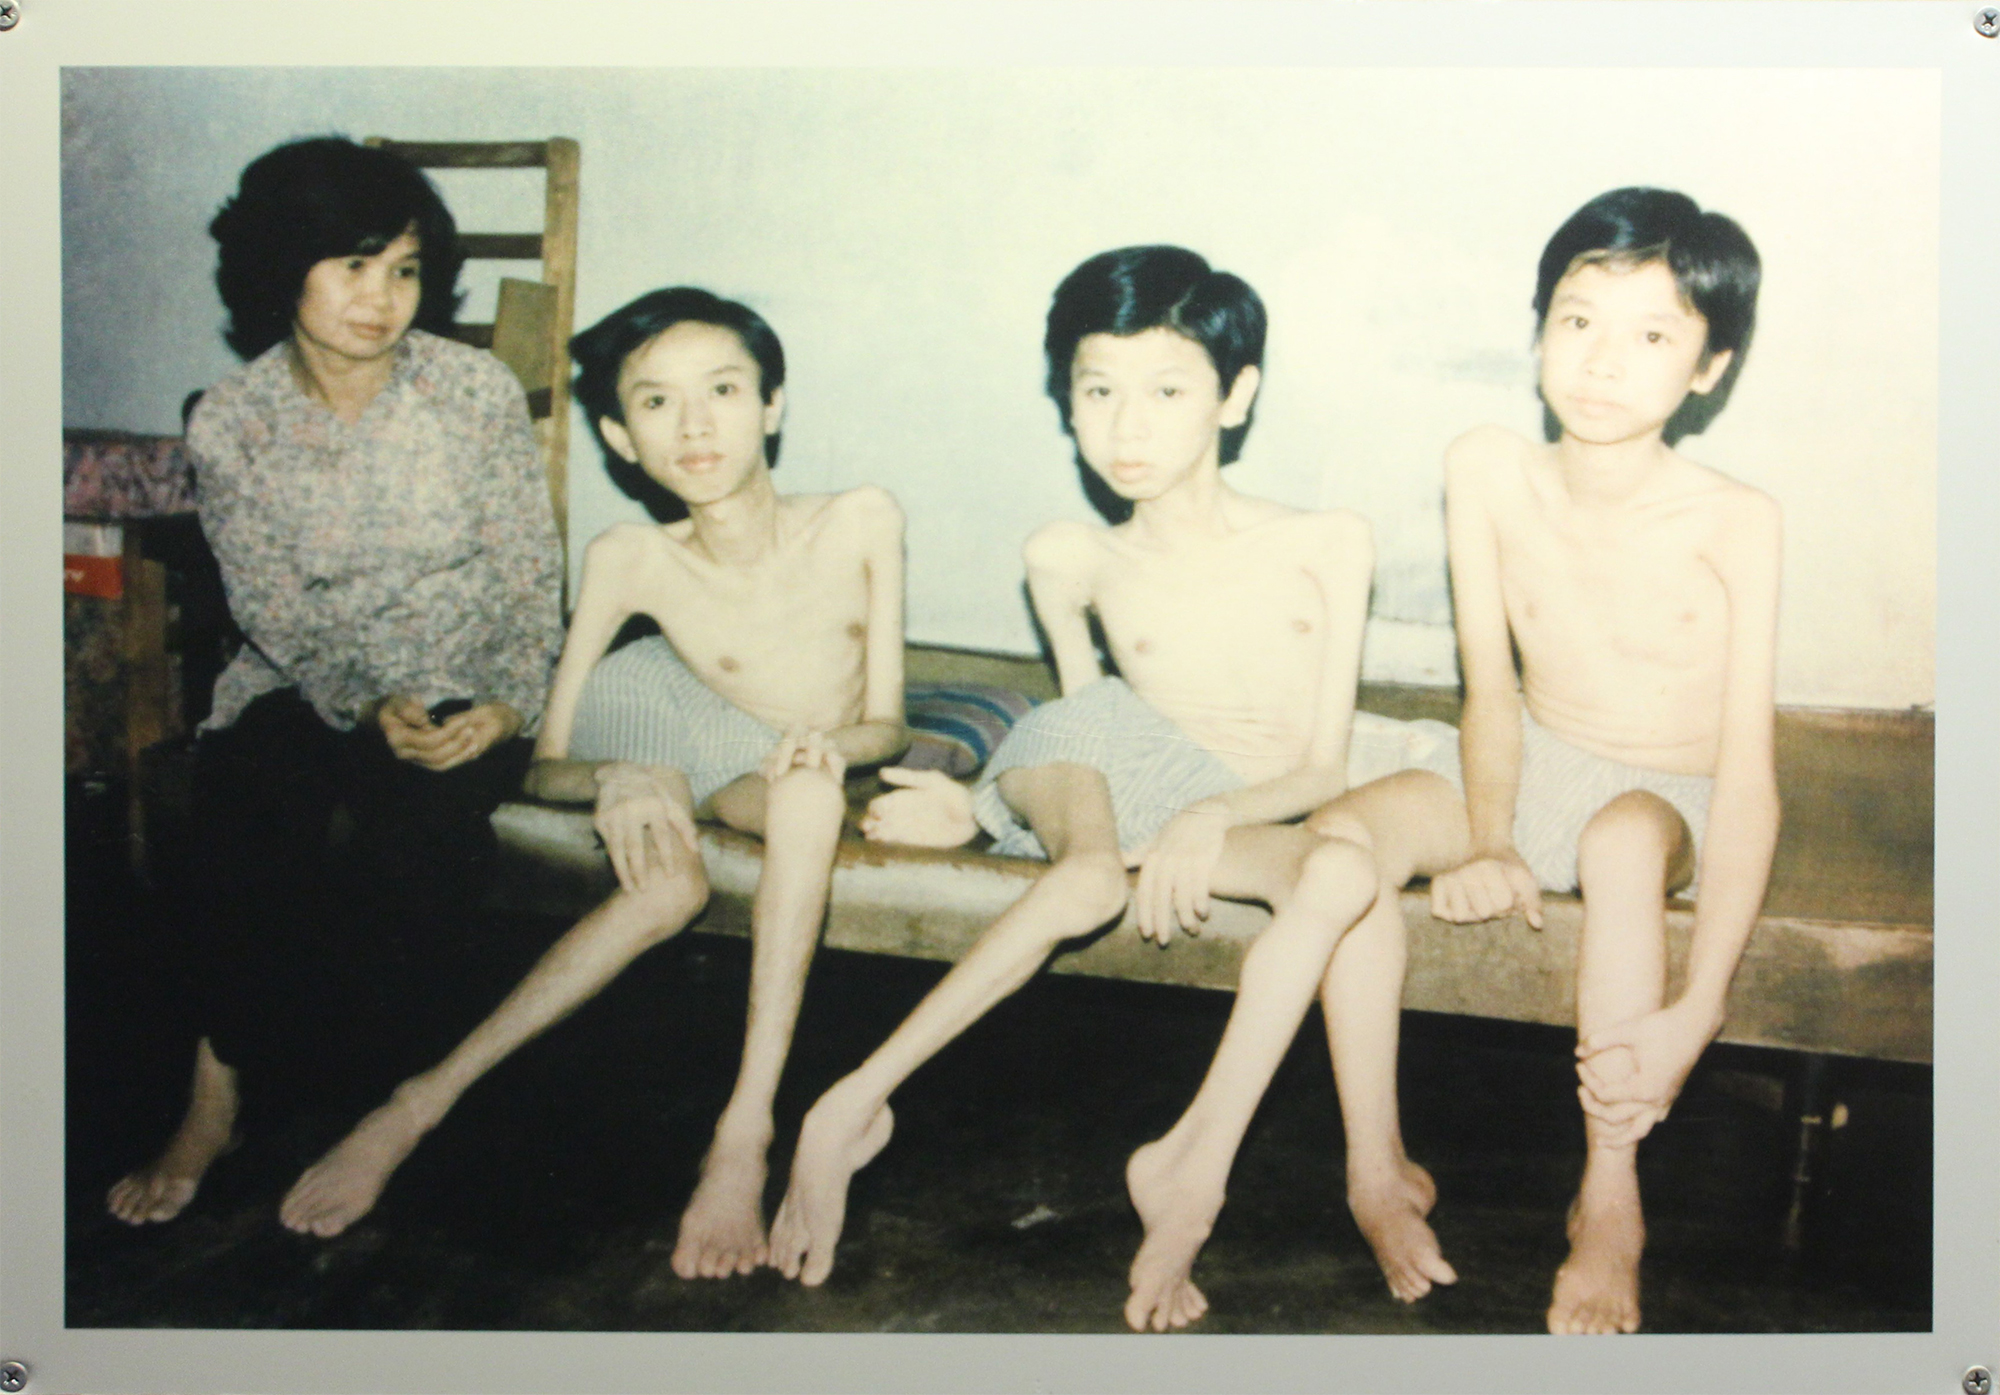 Entire families were affected by the transgenerational effects of Agent Orange. (Image: War Remnants Museum)